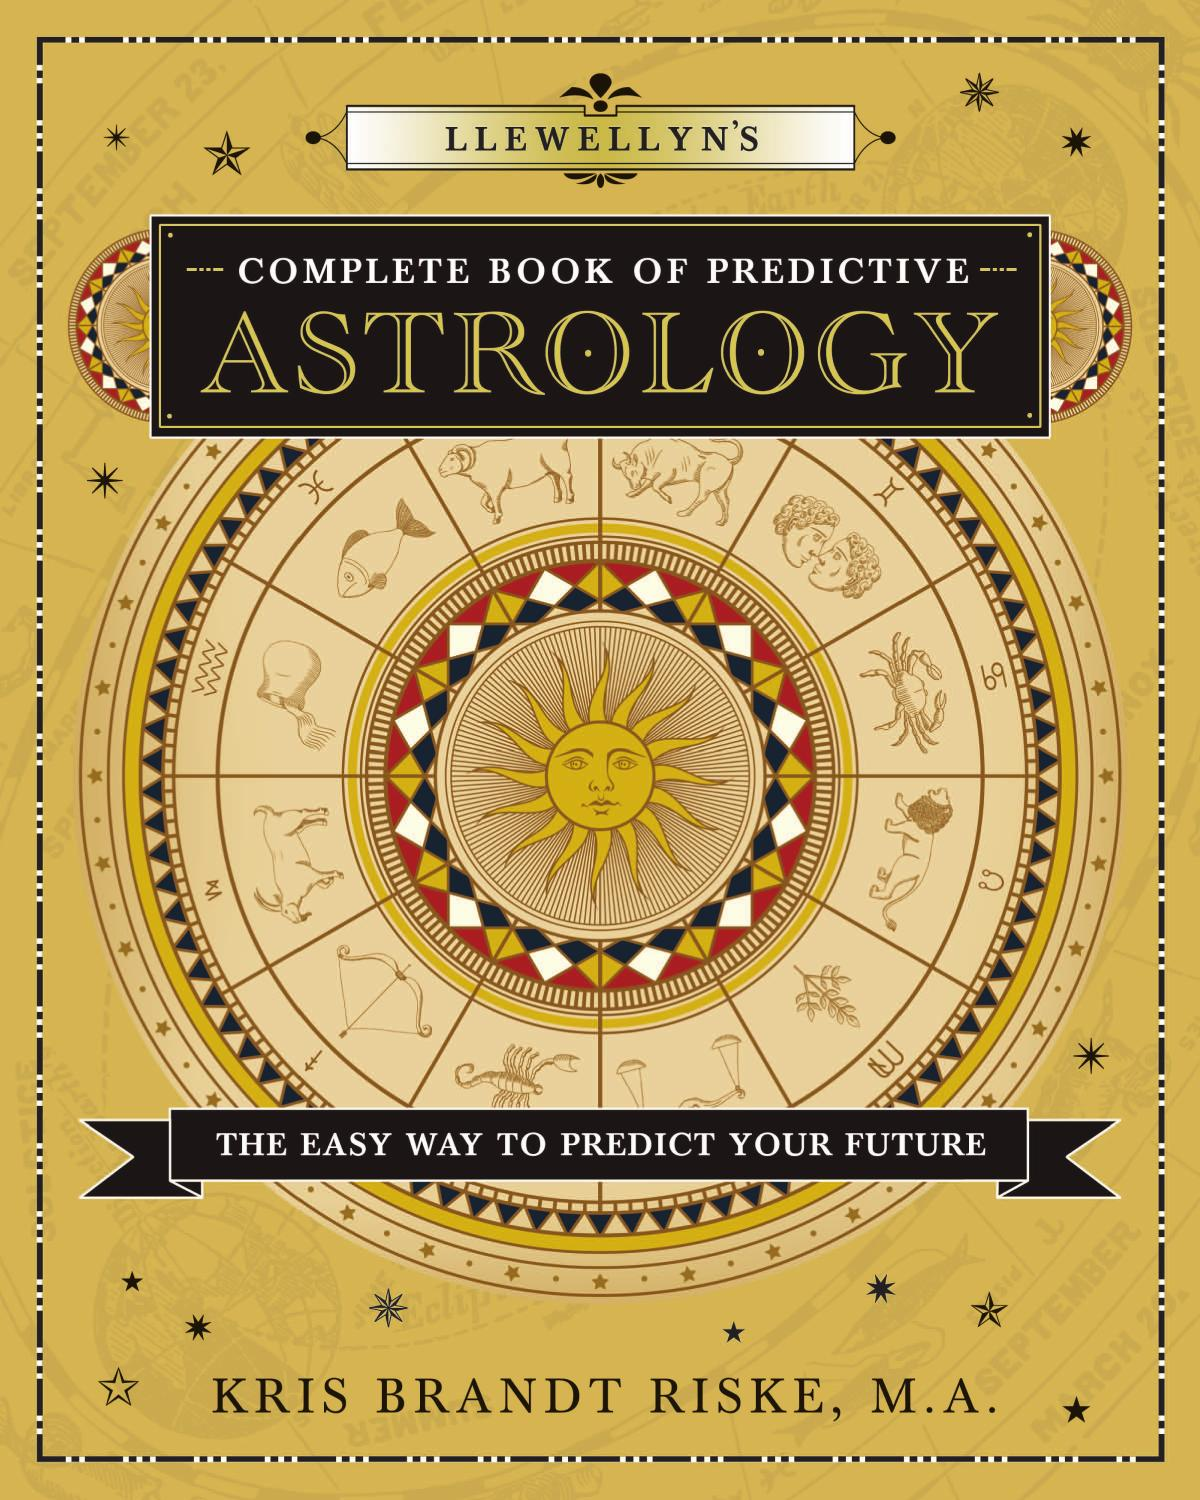 Llewellyns complete book of predictive astrology by llewellyn llewellyns complete book of predictive astrology by llewellyn worldwide ltd issuu nvjuhfo Gallery